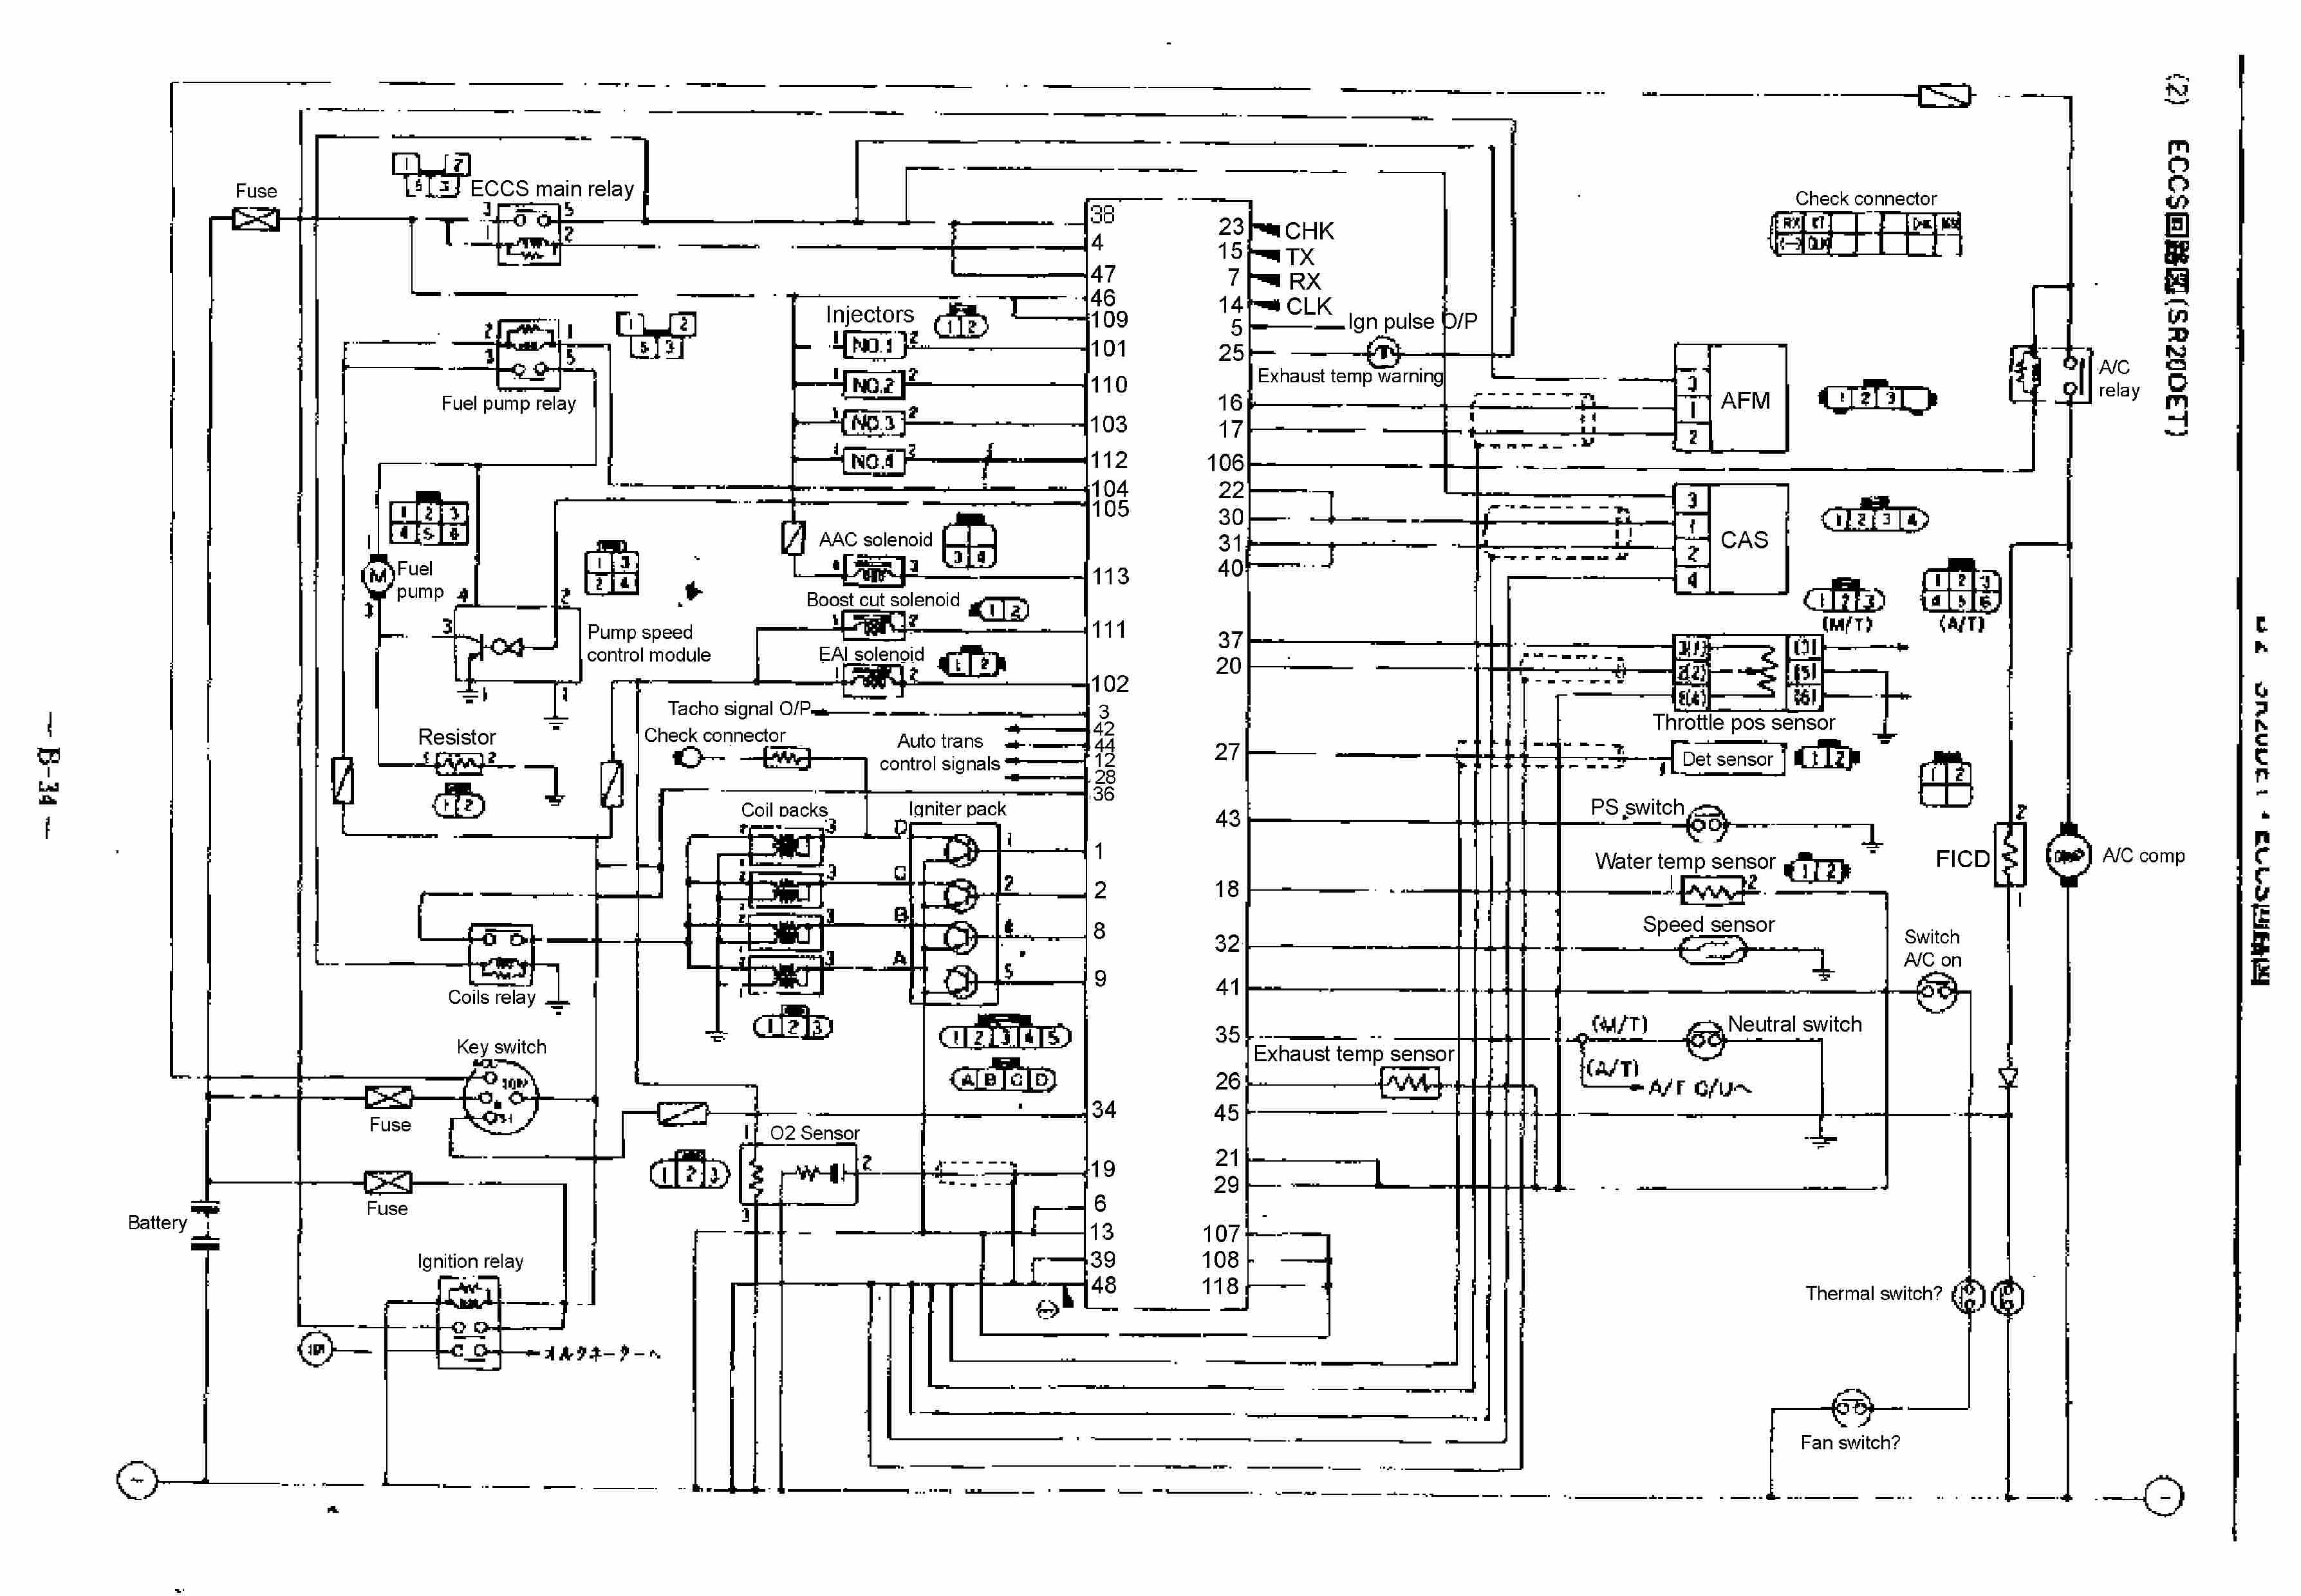 Cbus Wiring Diagram New Home - Wiring Diagramtelephonie-dentreprise-var.fr